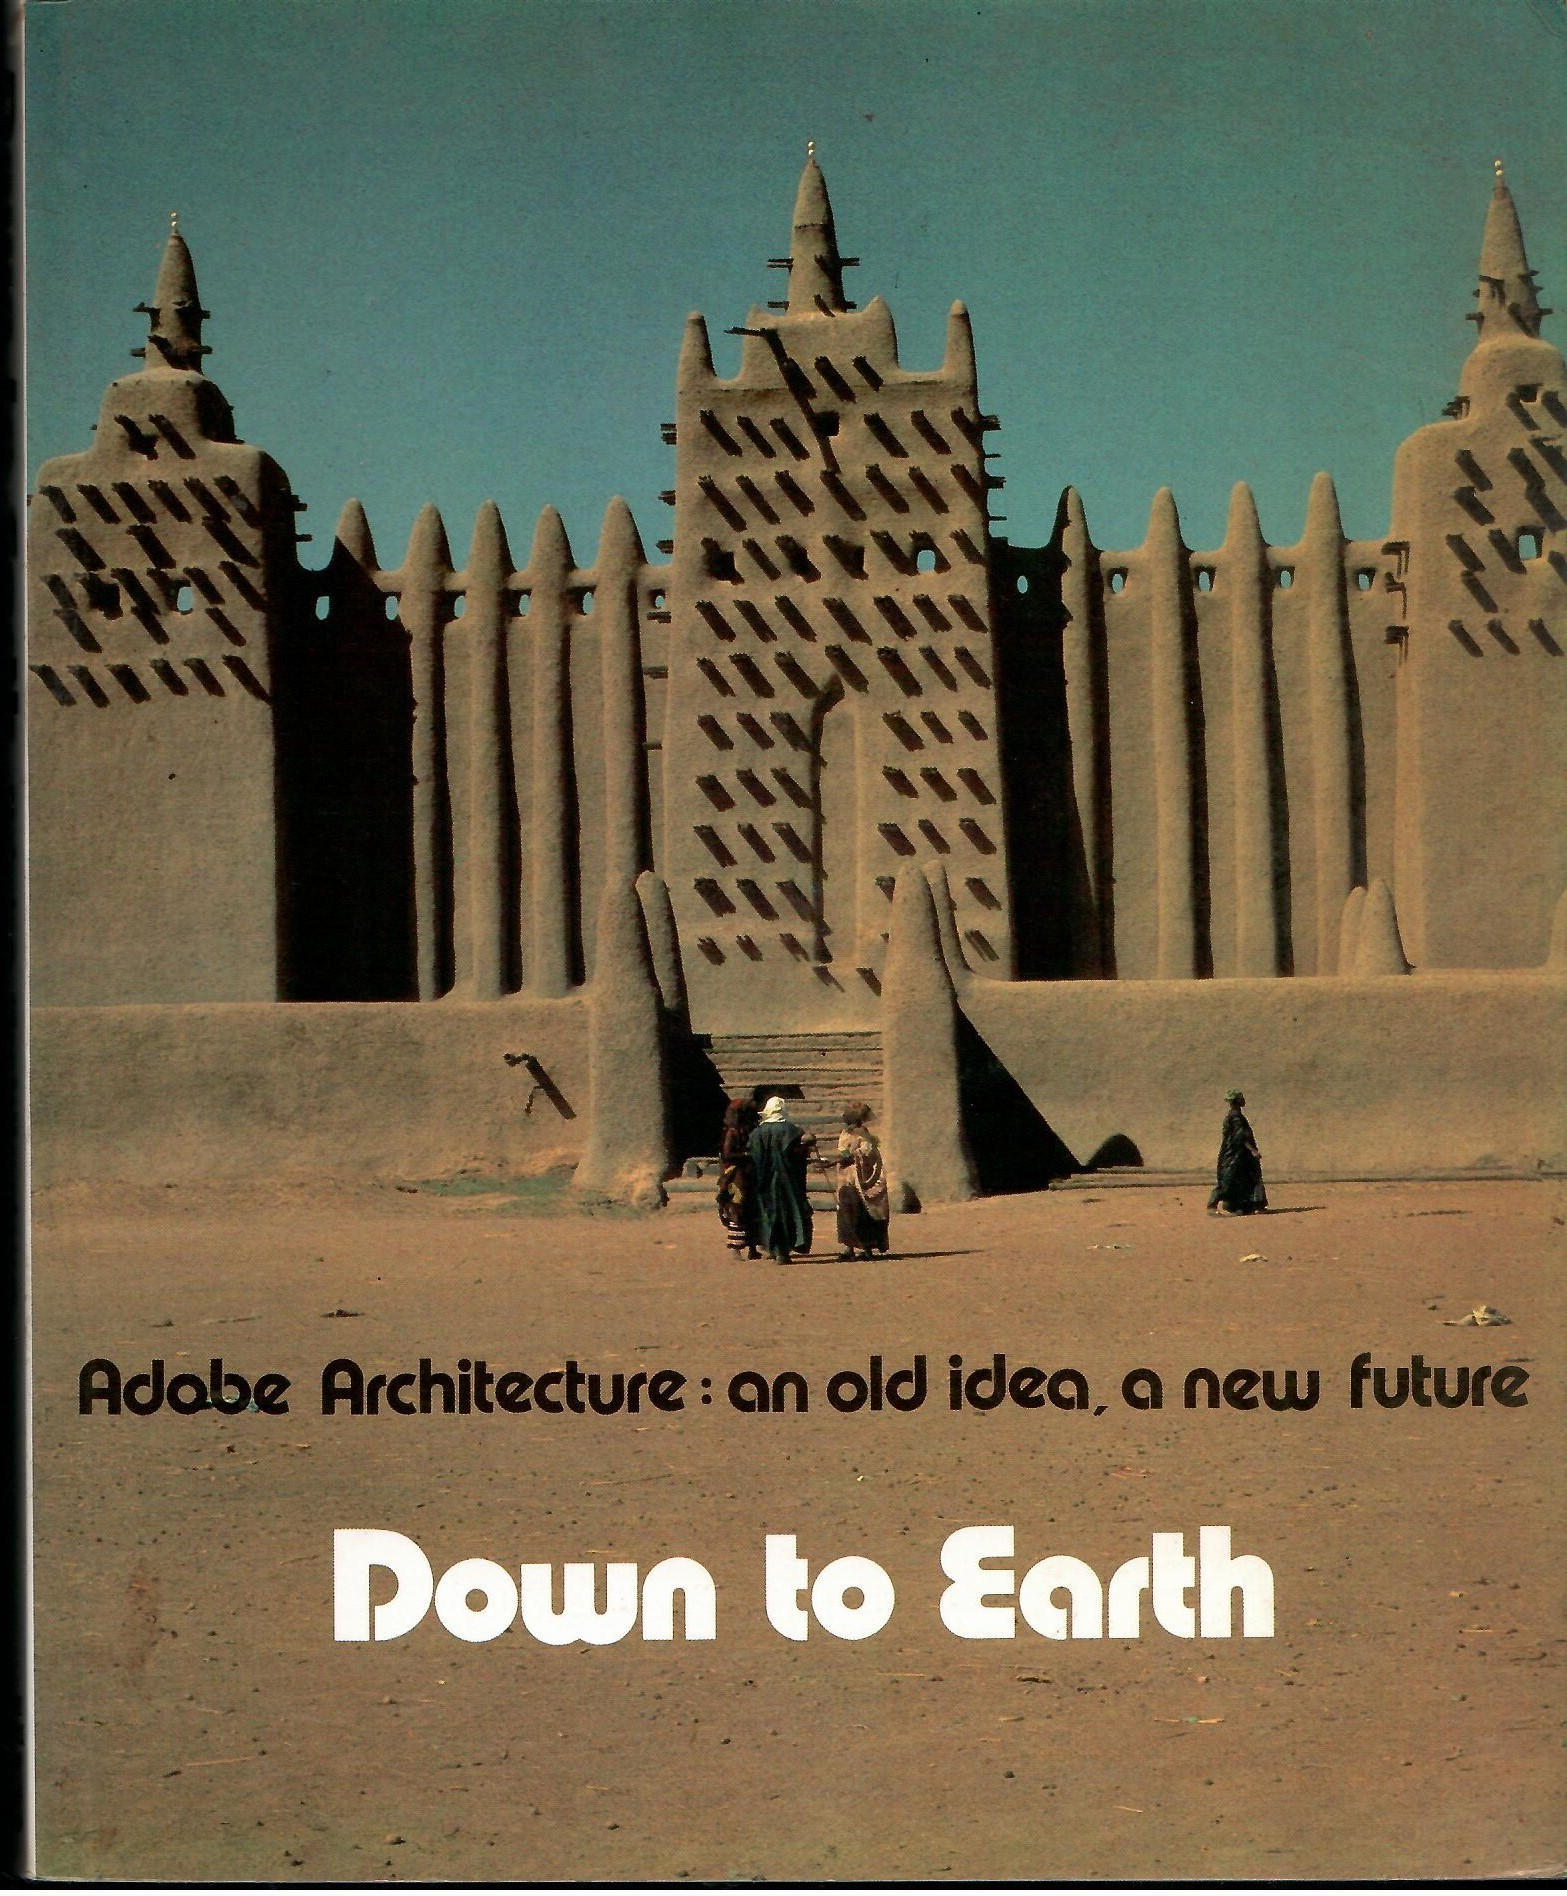 Image for Adobe Architecture: an Old Idea, a New Future; DOWN TO EARTH